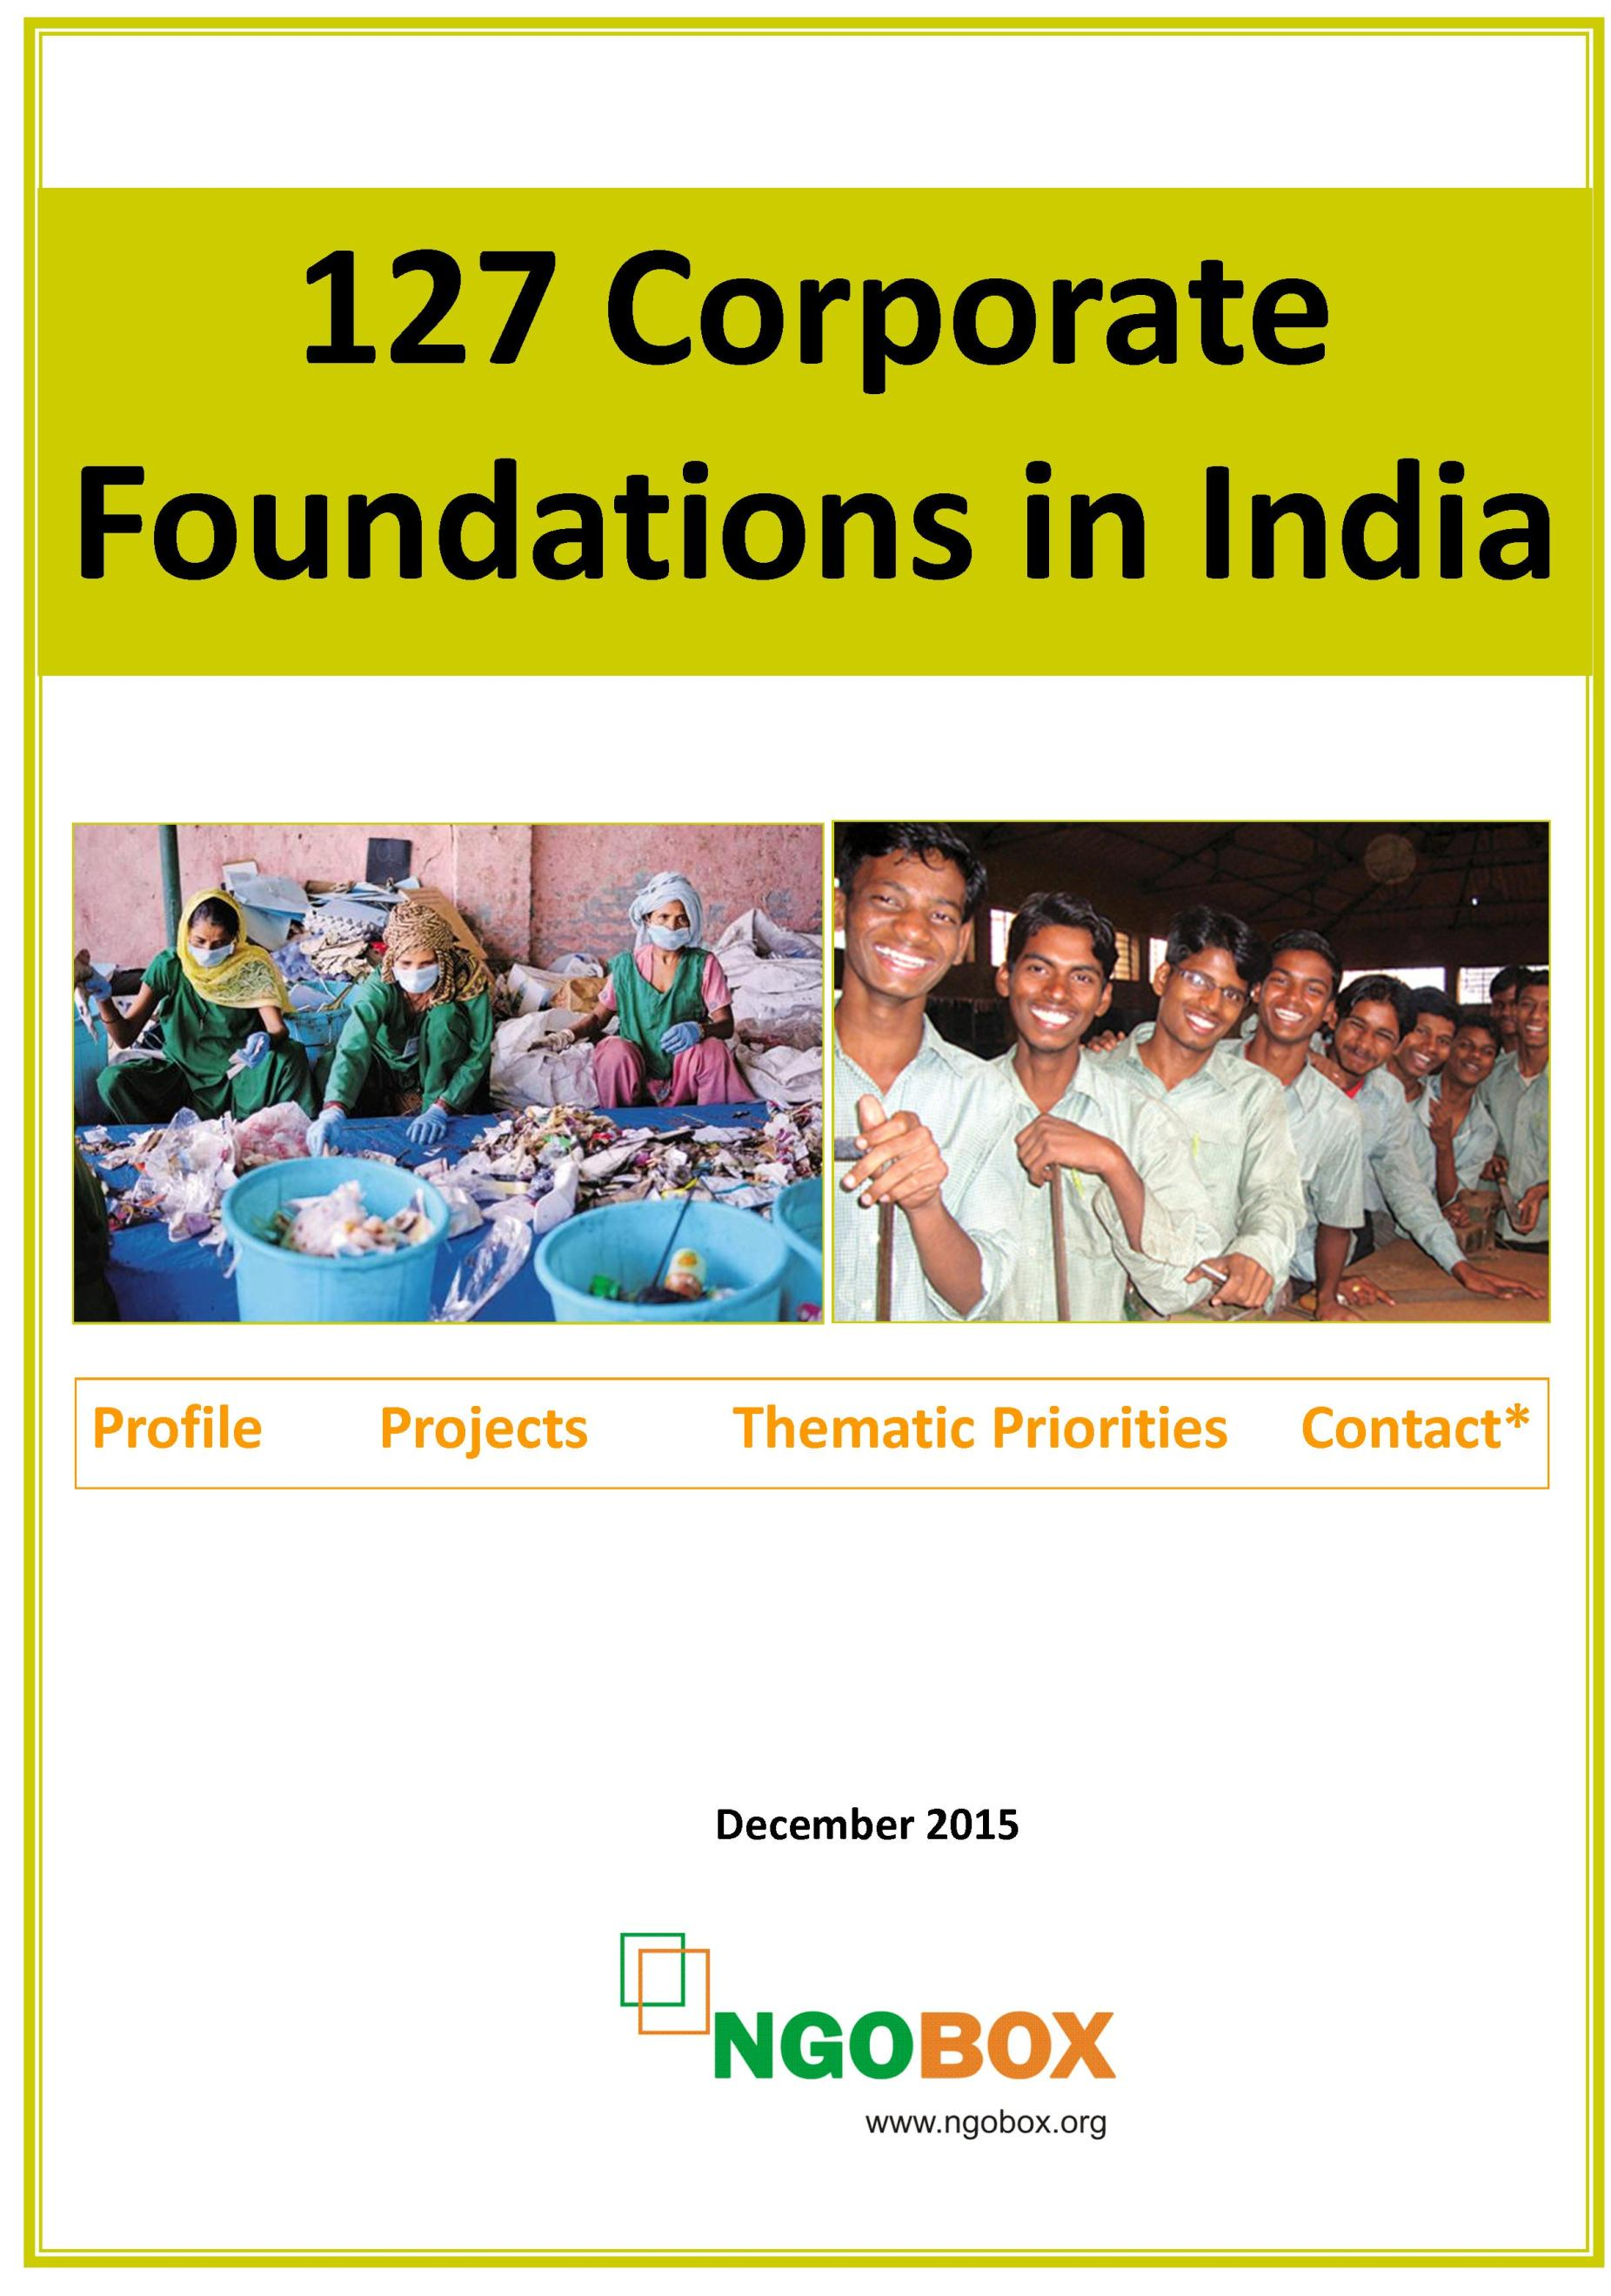 127 Corporate (CSR) Foundations in India